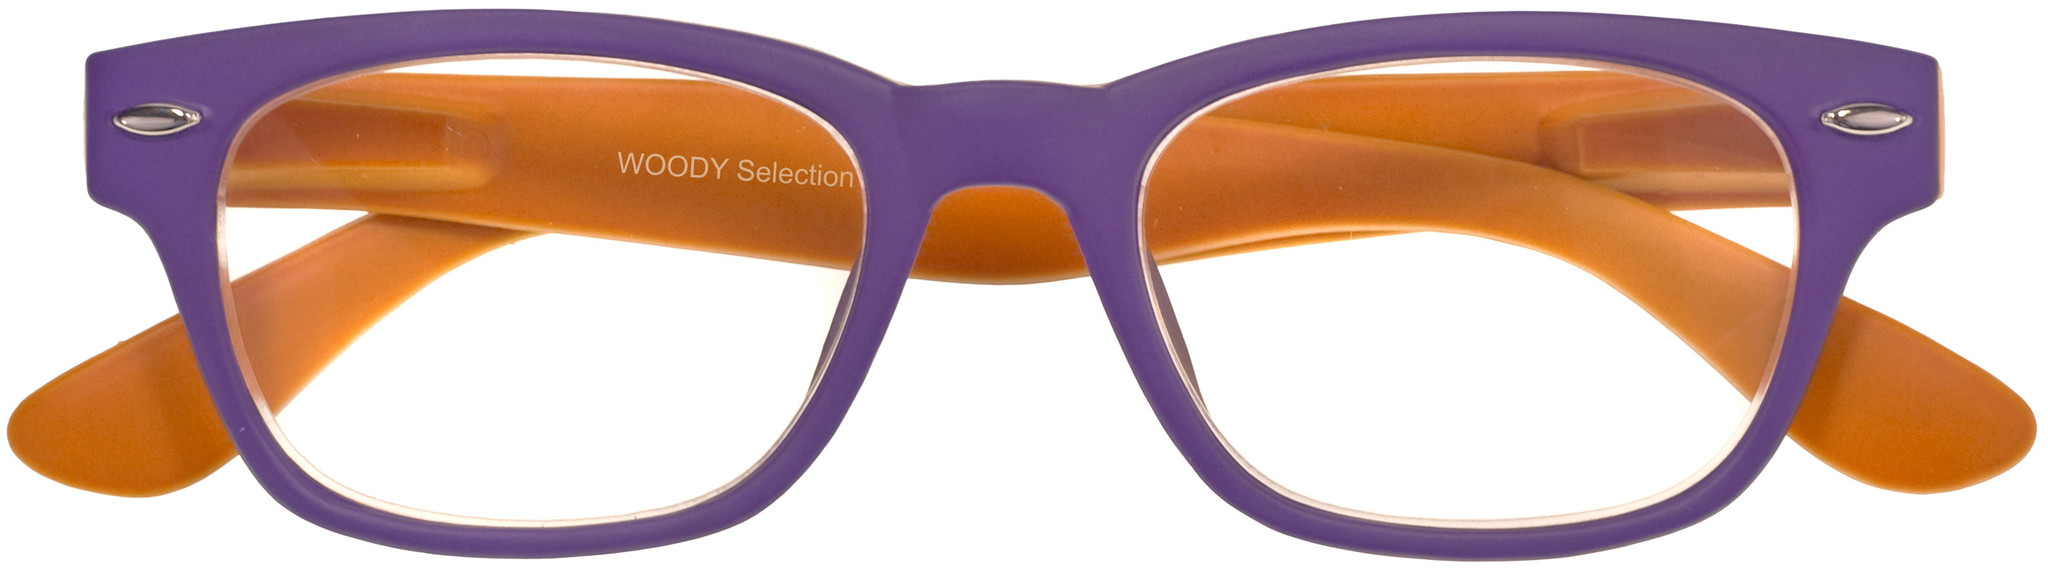 Woody Selection Purple-orange Readers by I Need You Readers